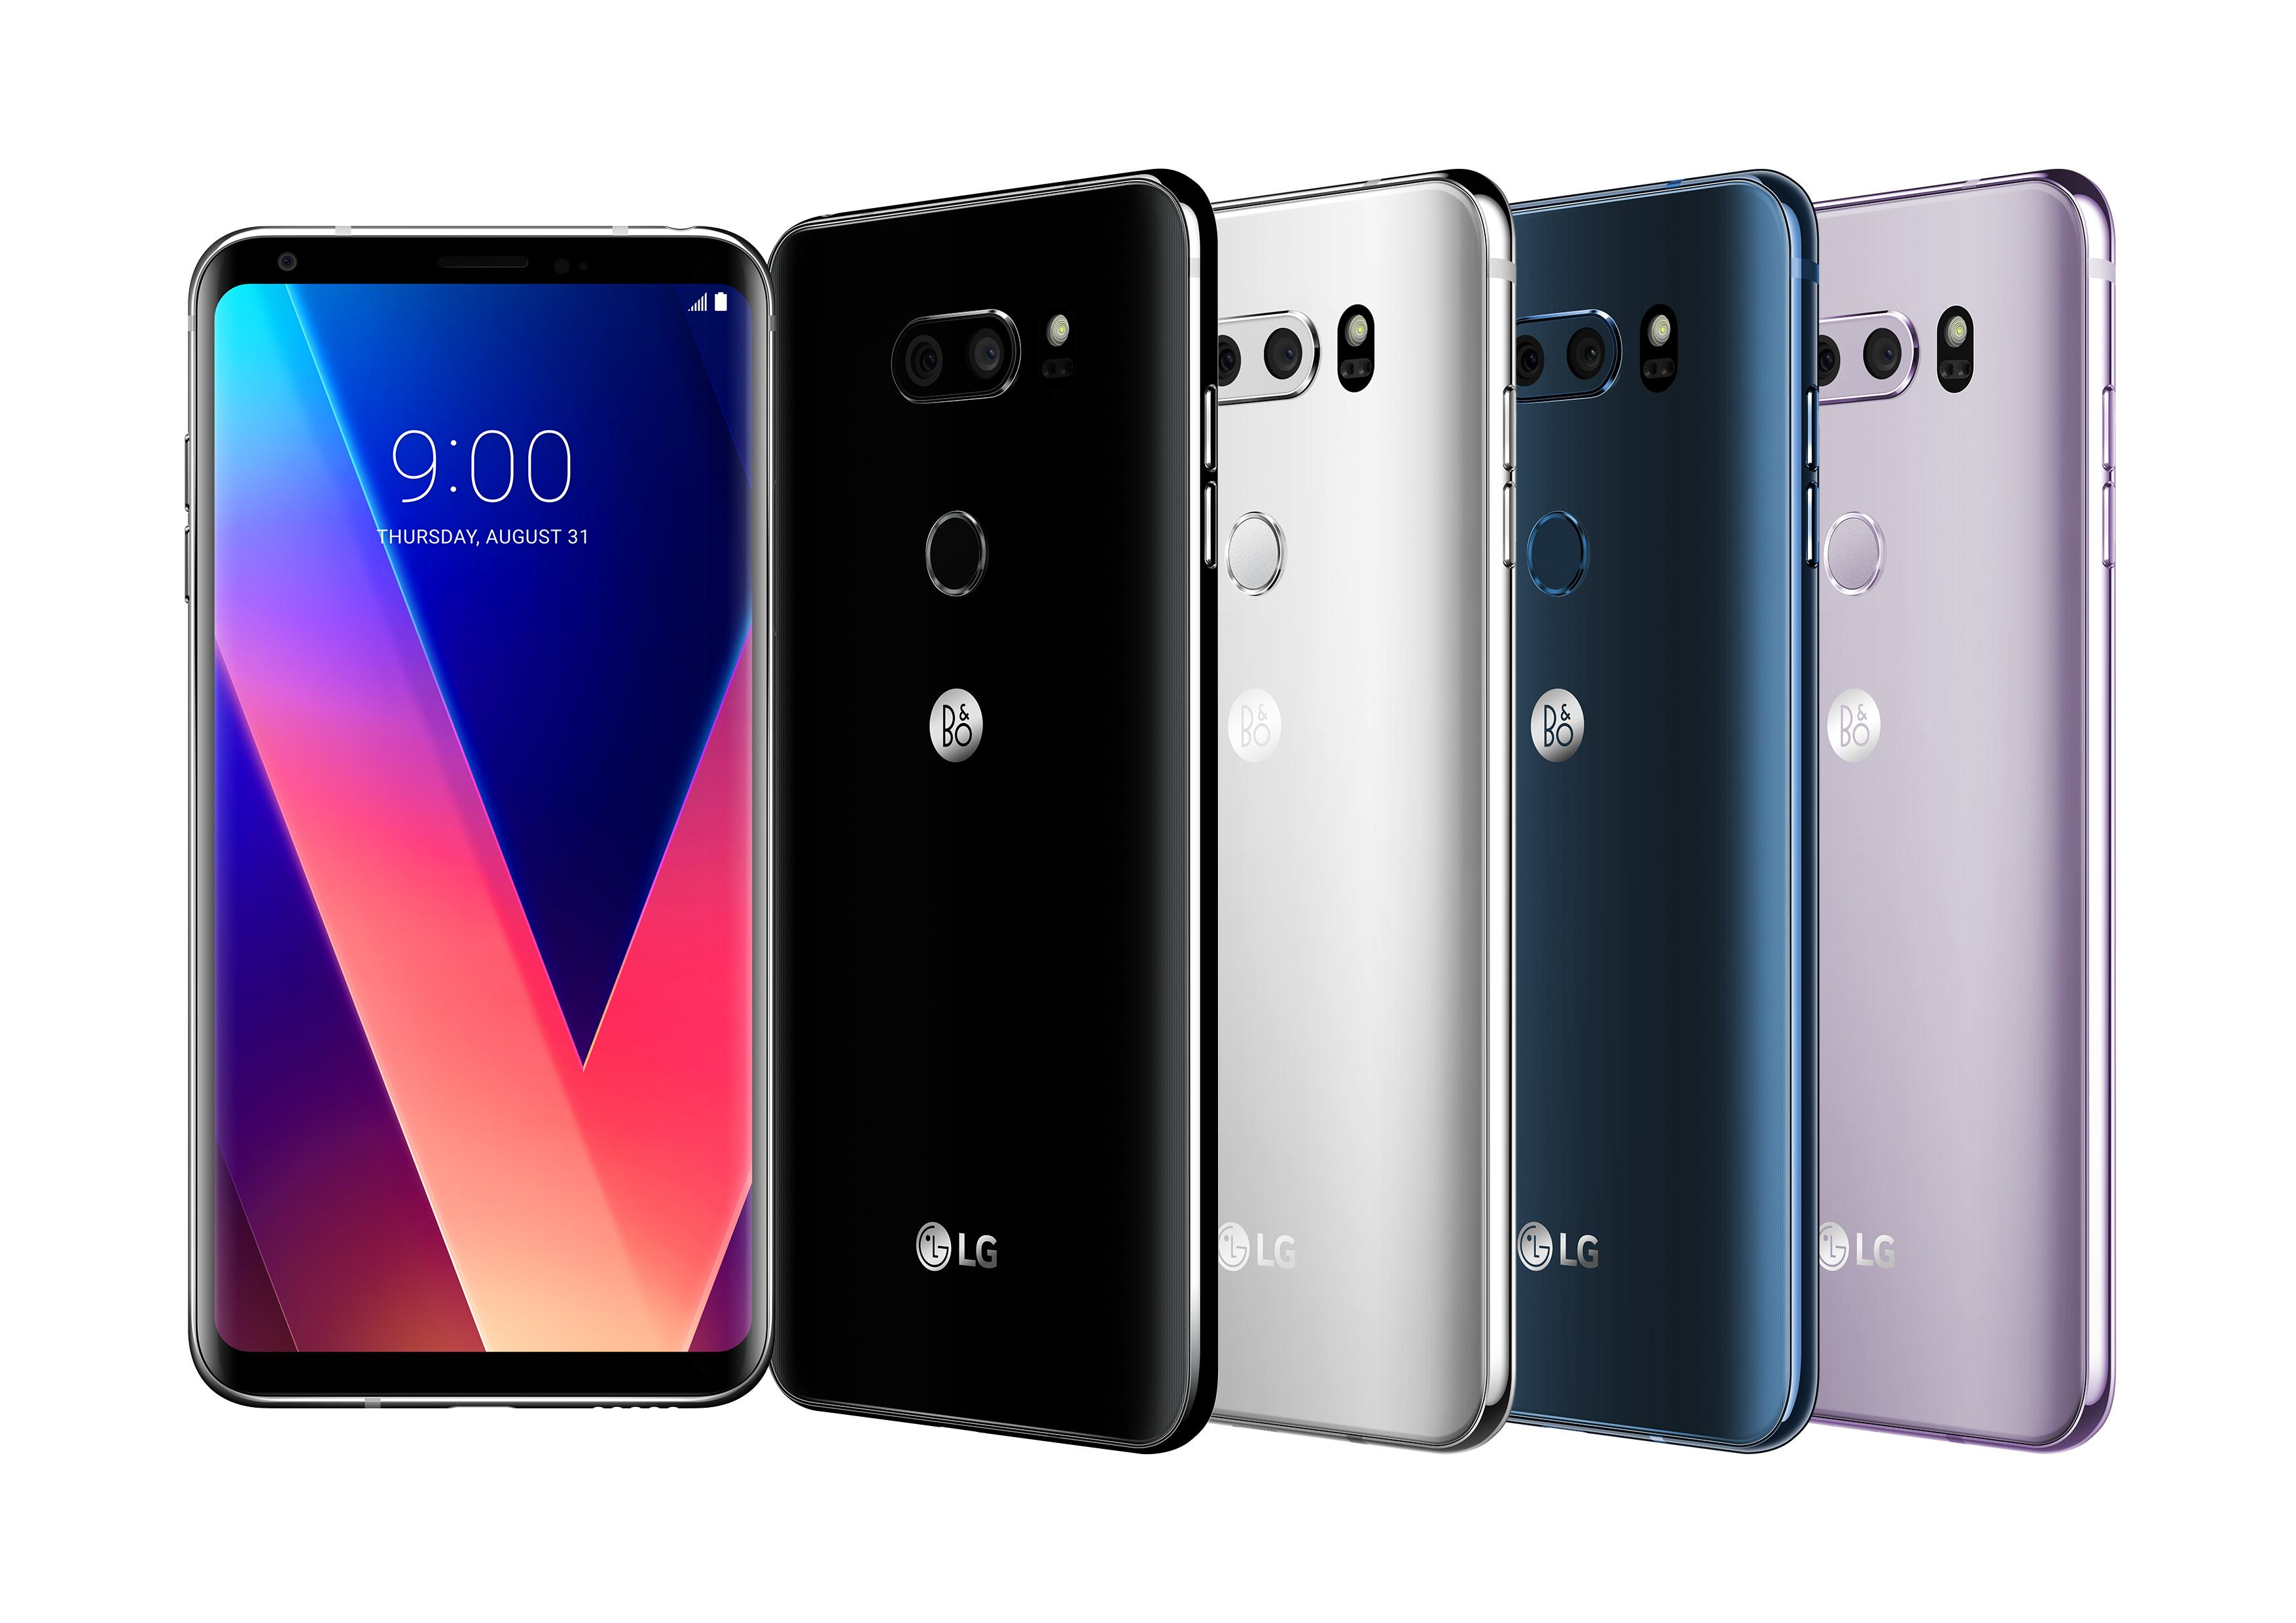 LG has launched the flagship the pany s latest attempt to break the high end smartphone market dominated by the likes of Apple and Samsung